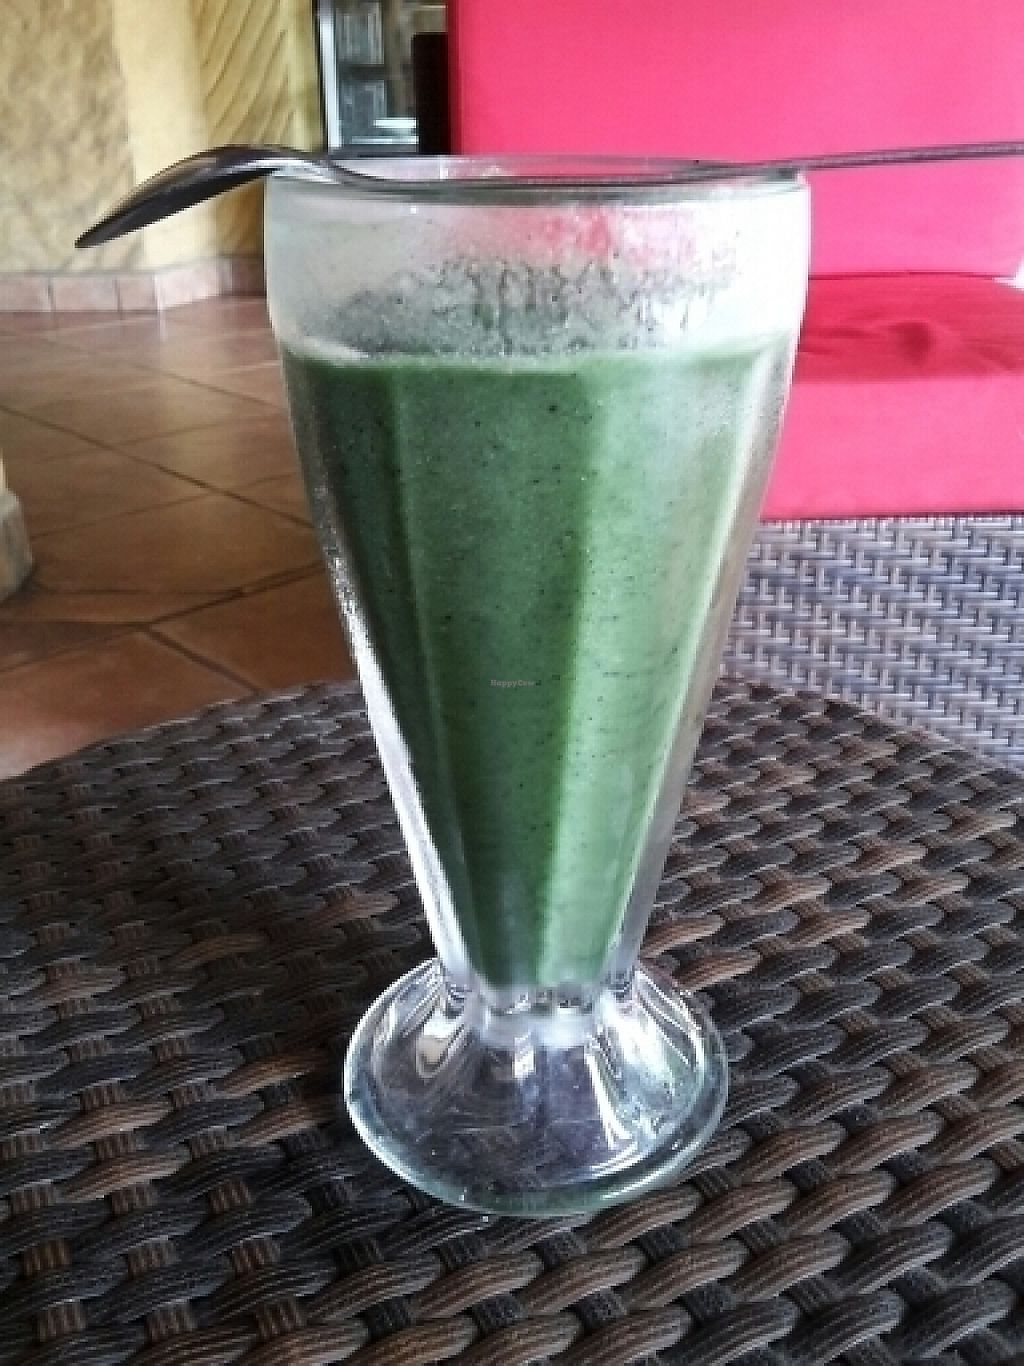 "Photo of El Sano Banano Restaurant  by <a href=""/members/profile/cocoholic"">cocoholic</a> <br/>green nectar smoothie with spirulina. Yum! <br/> June 2, 2017  - <a href='/contact/abuse/image/14170/265110'>Report</a>"